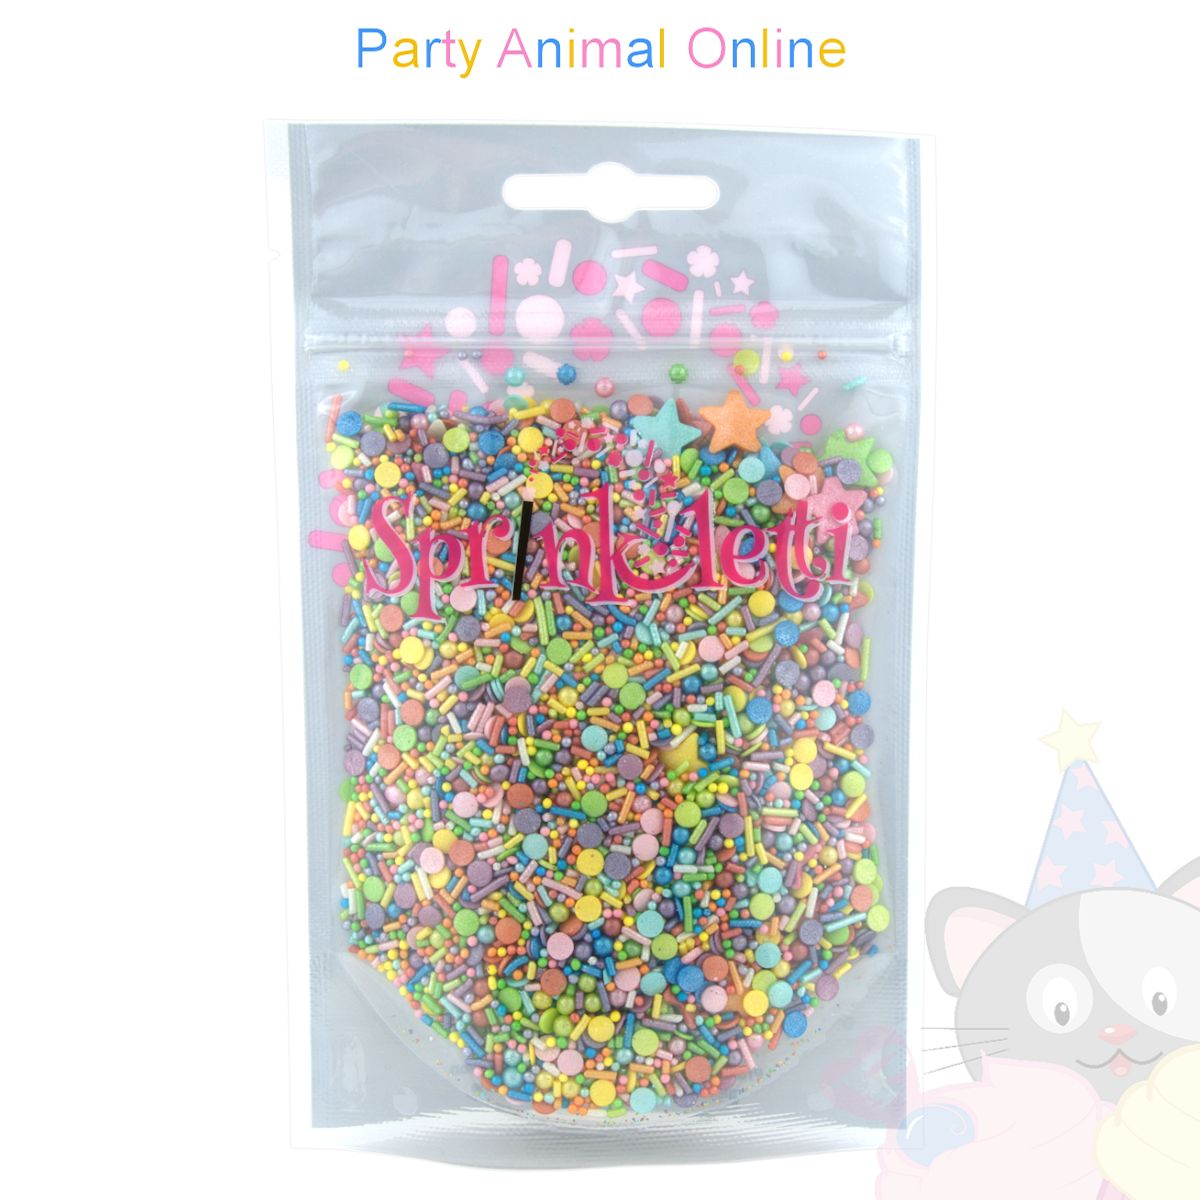 Sprinkletti - Edible Sprinkles Range - Rainbow Mix 100g